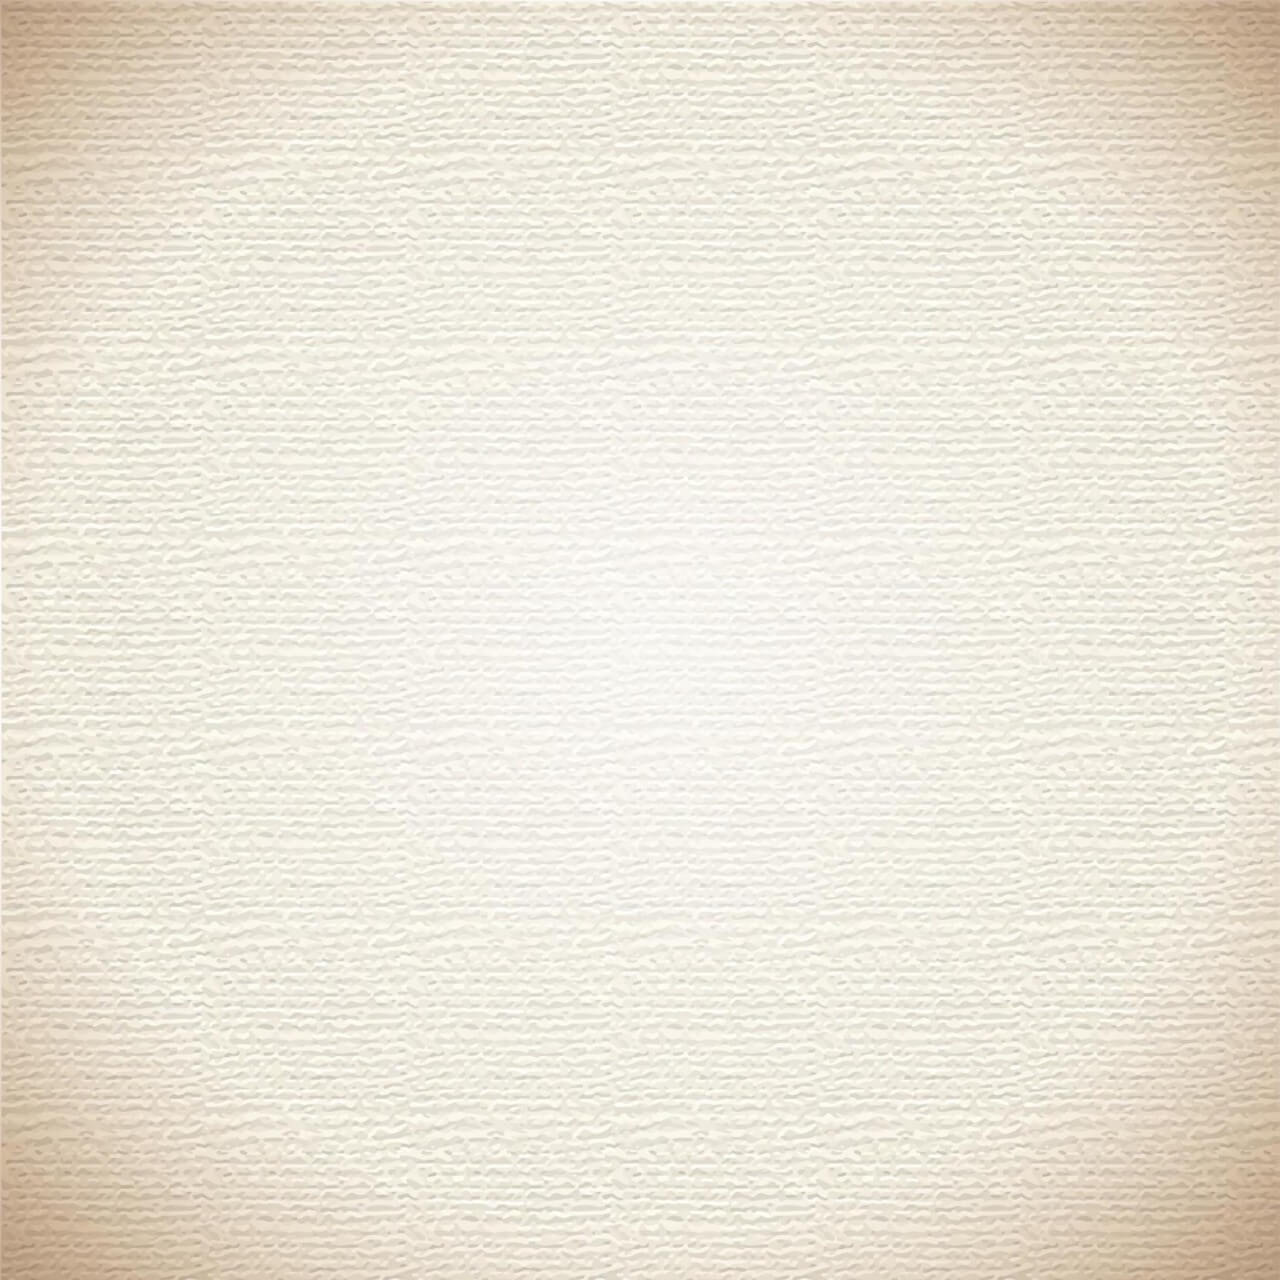 "Free vector ""Paper texture"""